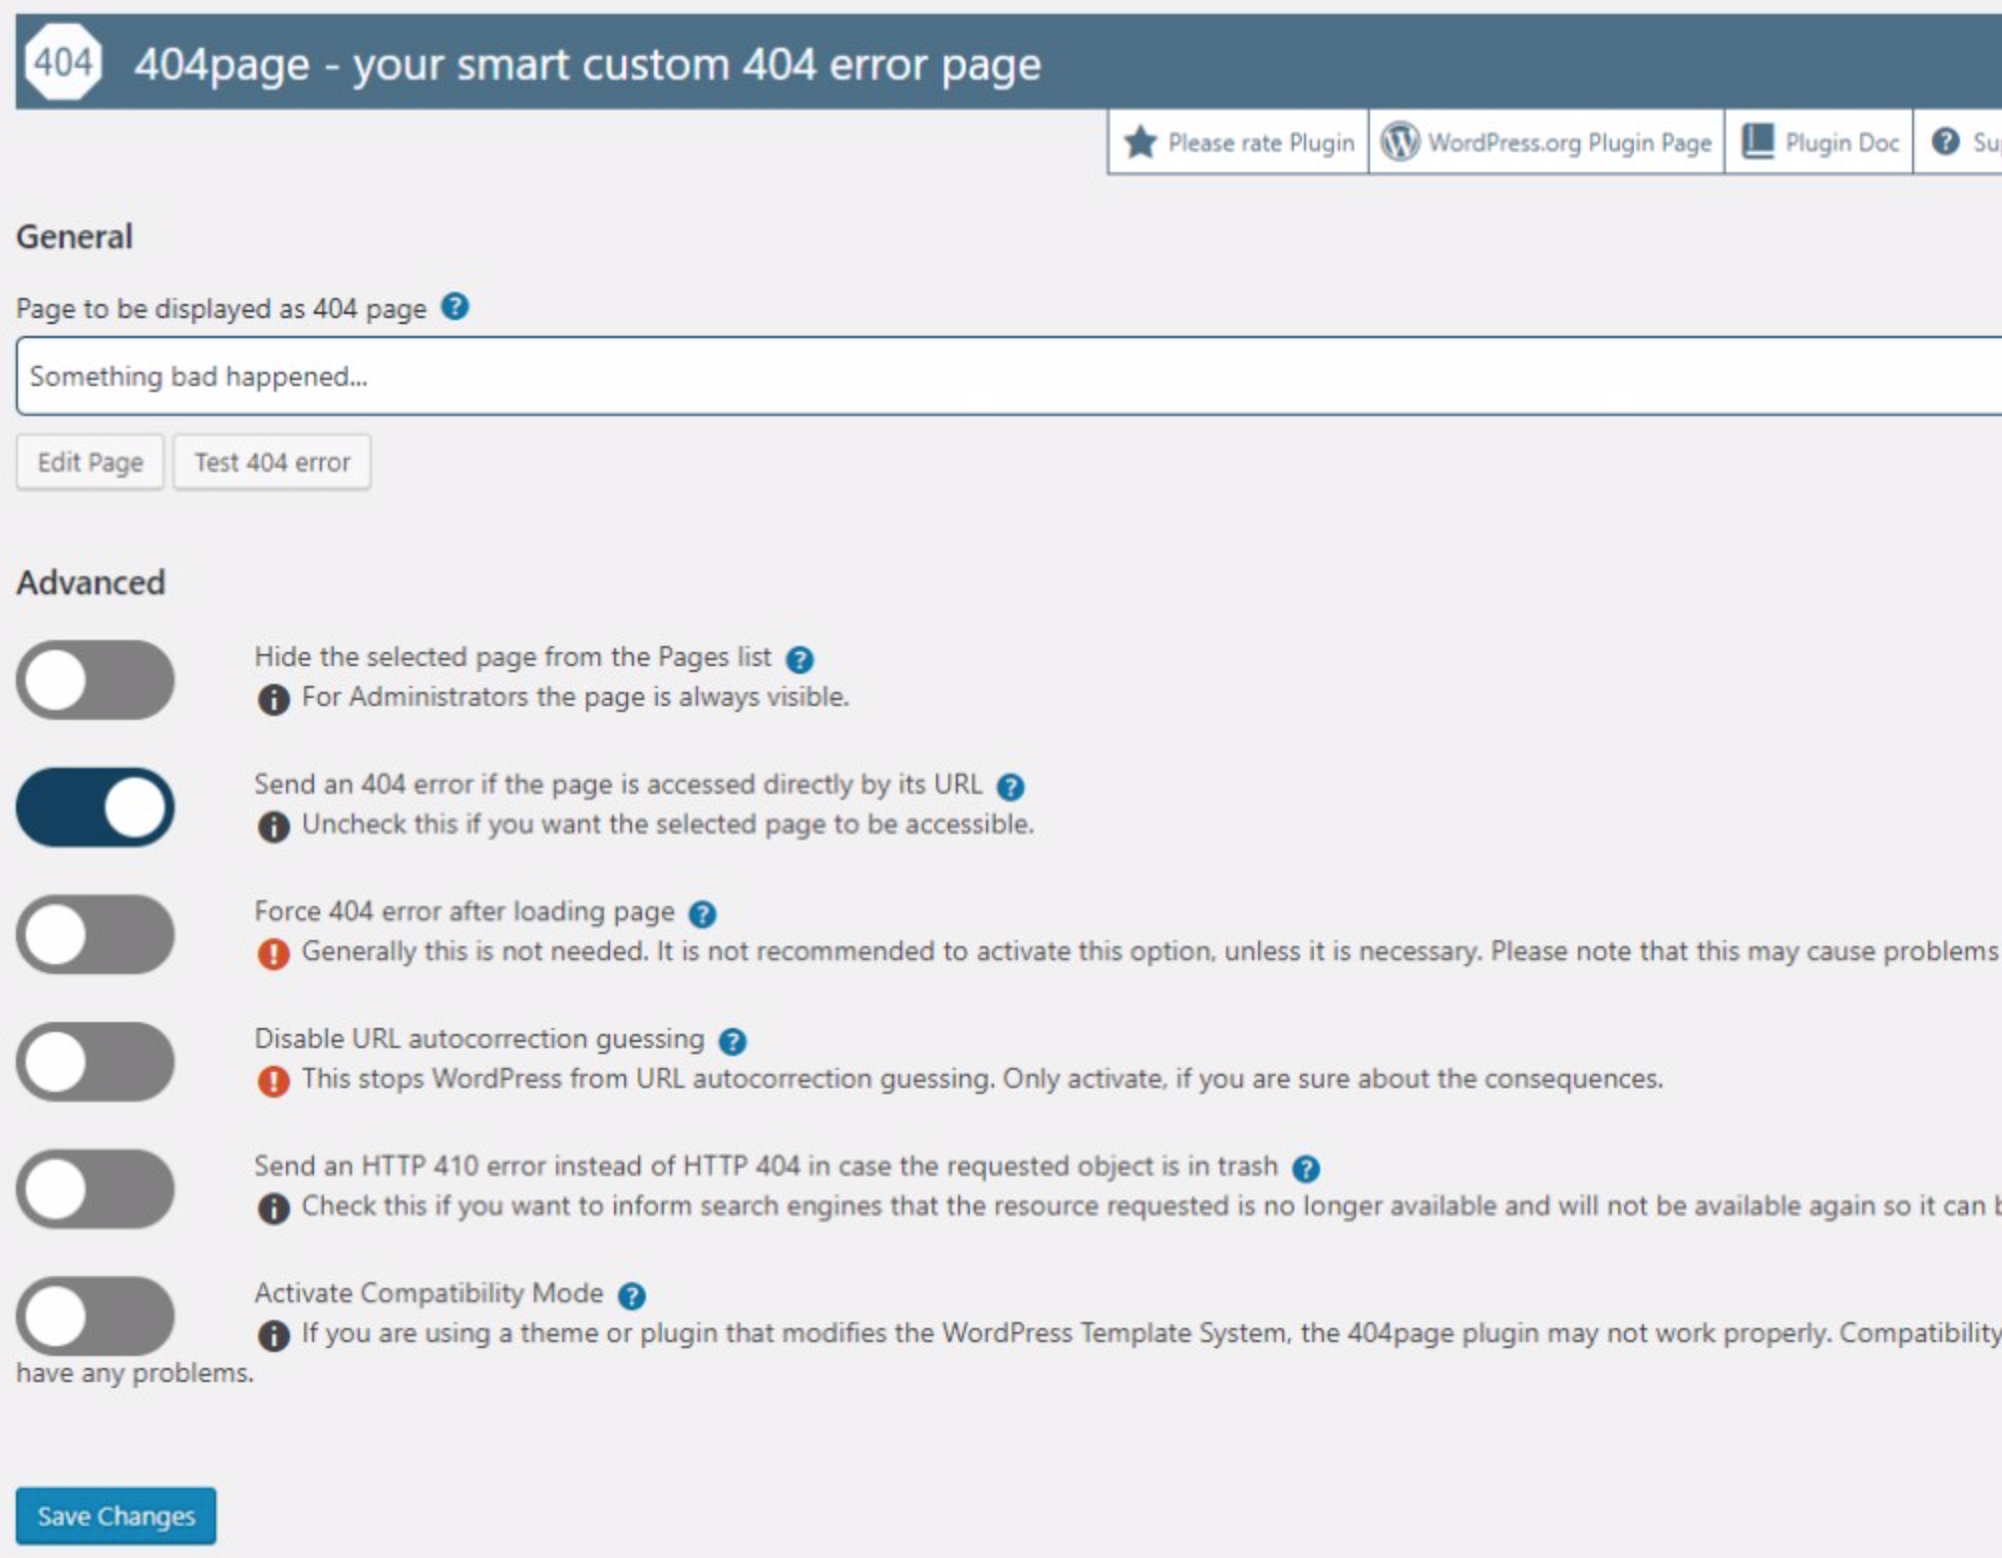 404page WordPress Plugin Settings